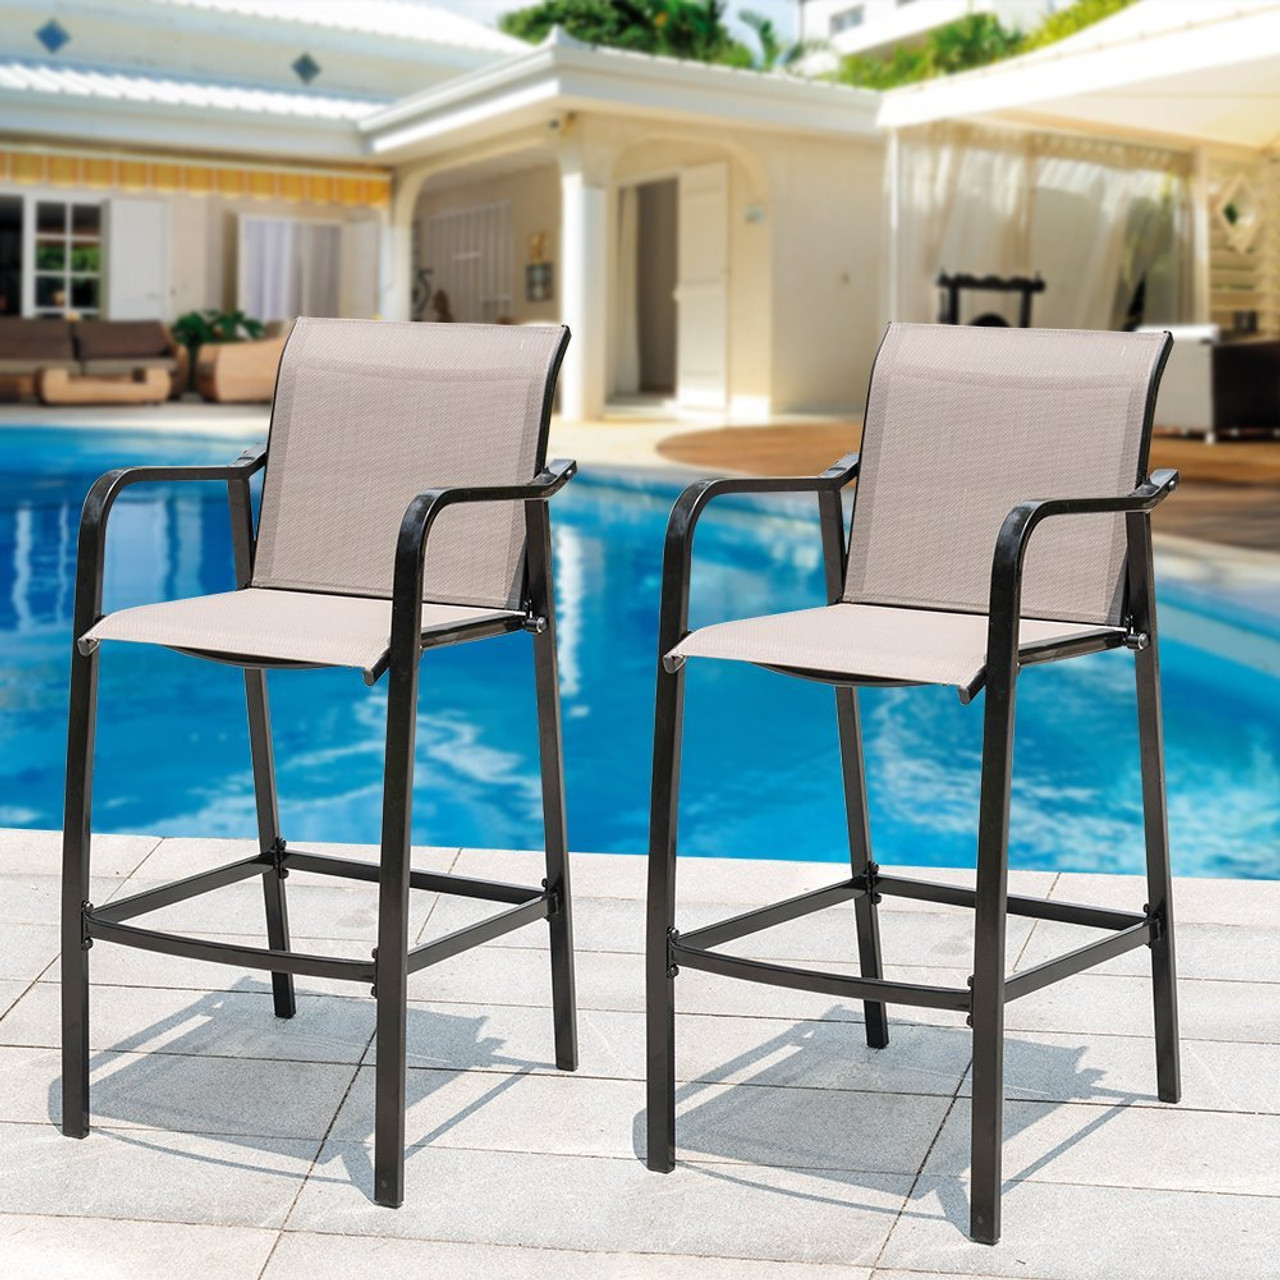 Fabric Counter Height Bar Stools Sundale Outdoor Counter Height Bar Stool All Weather Patio Furniture With Quick Dry Textilene Fabric 2 Pcs Set Brown